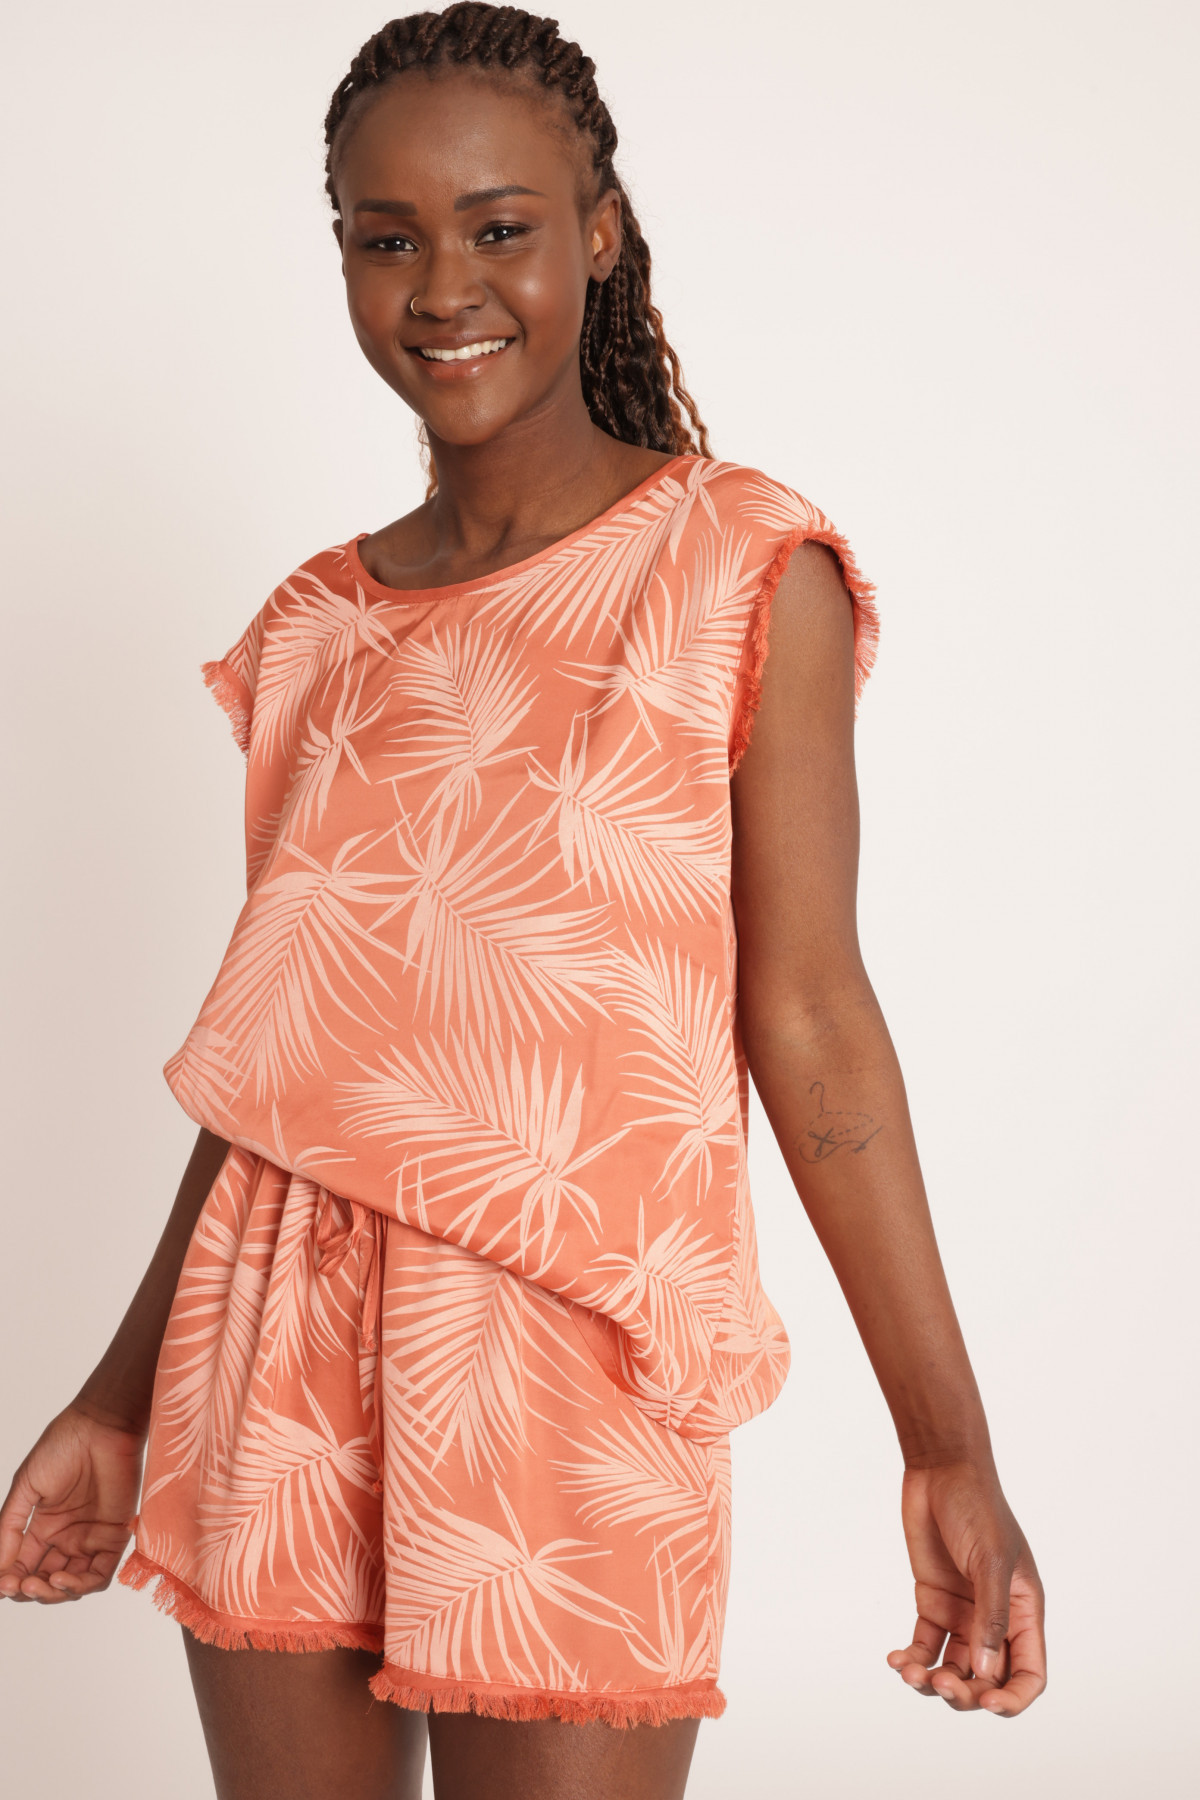 Sleeveless and Fringed Blouse in Palm Fantasy Print